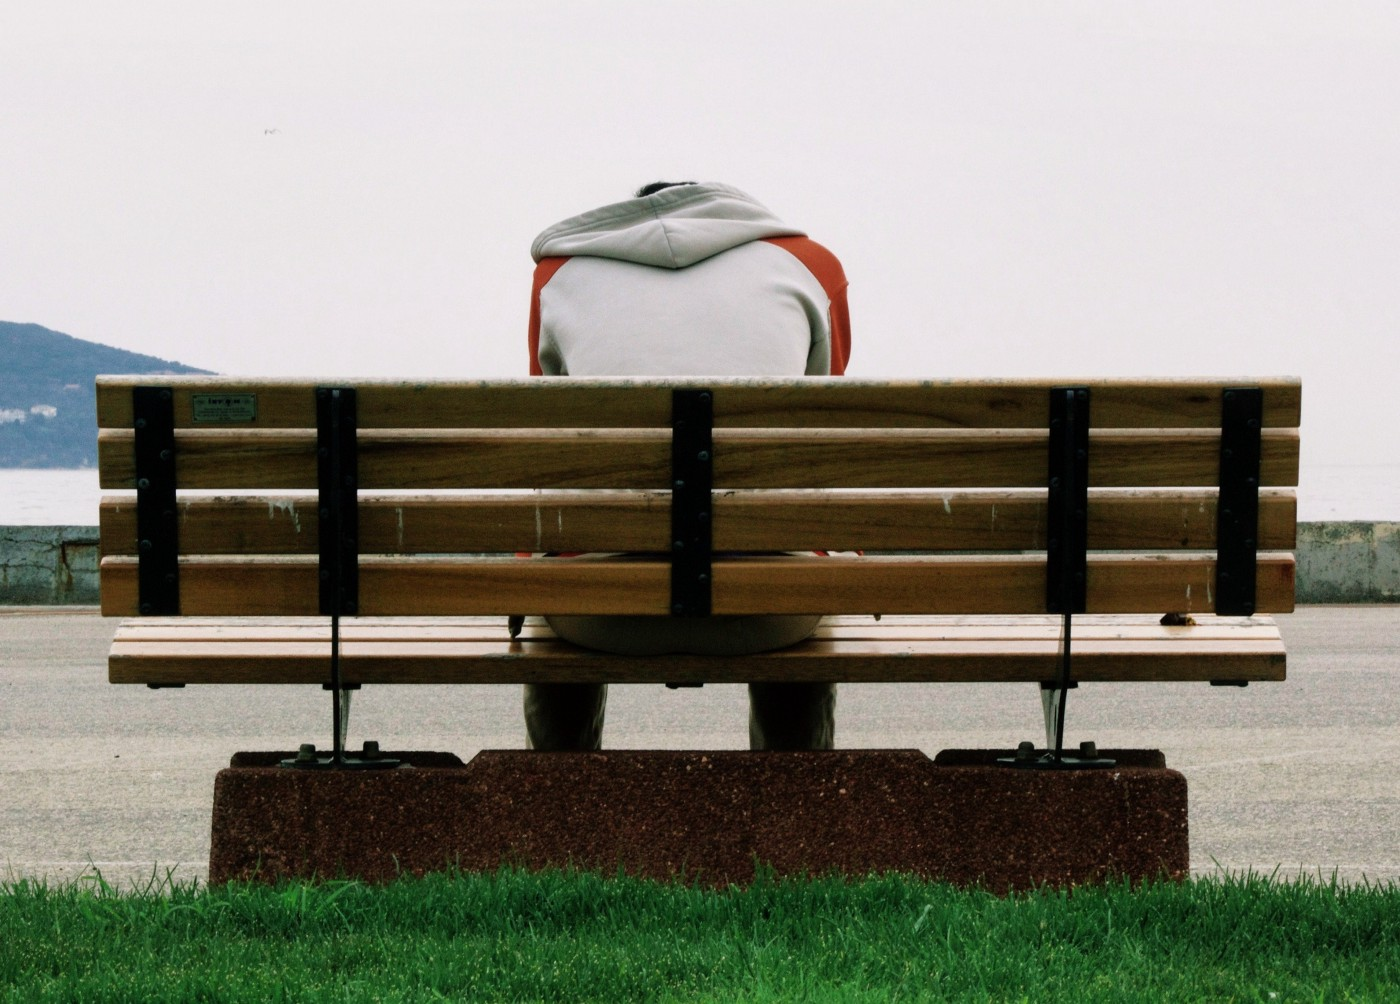 Desperate guy sits on bench